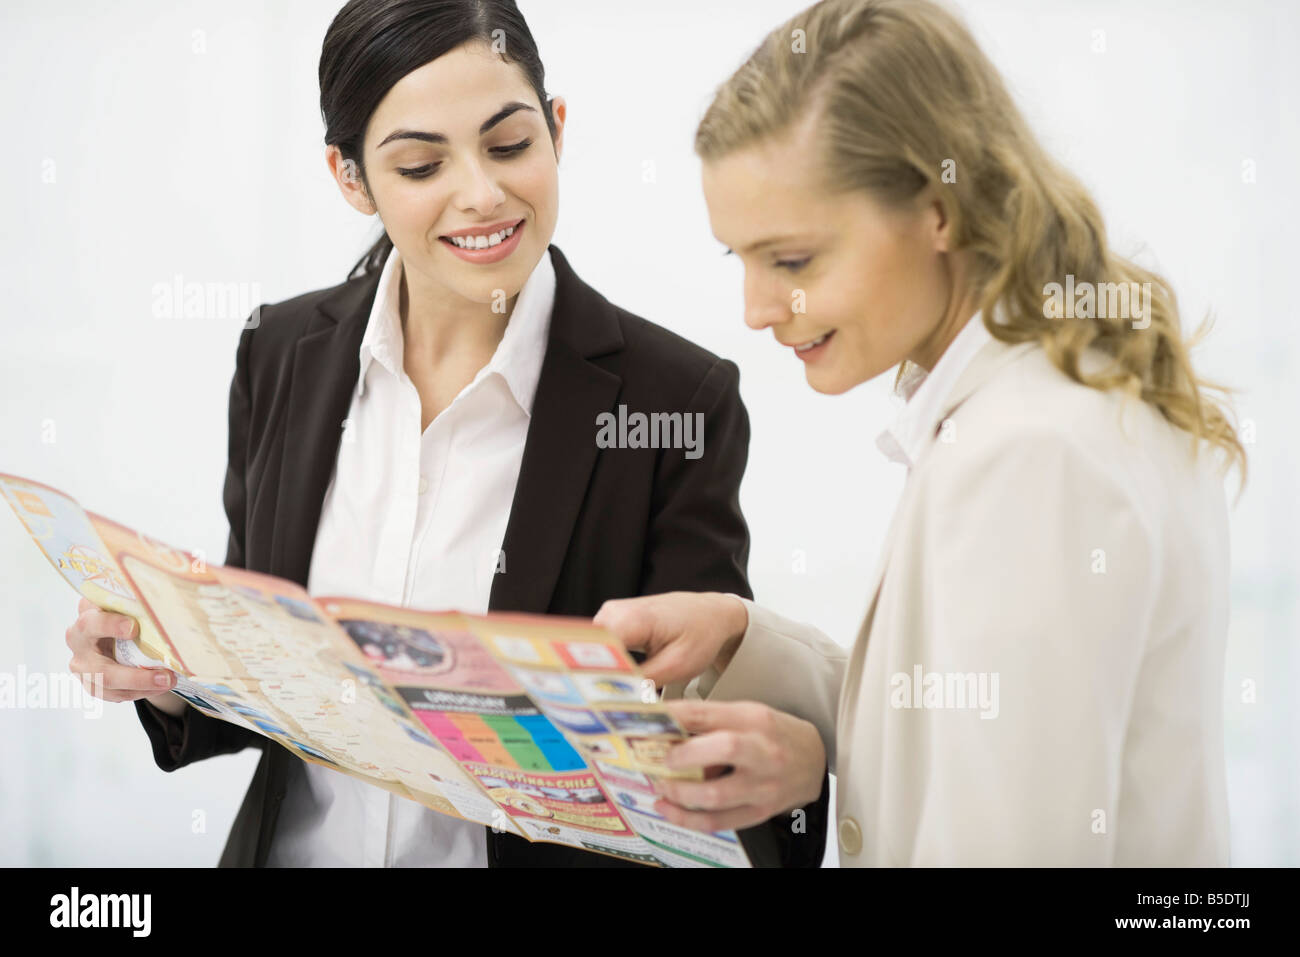 Two women looking at travel brochure together - Stock Image